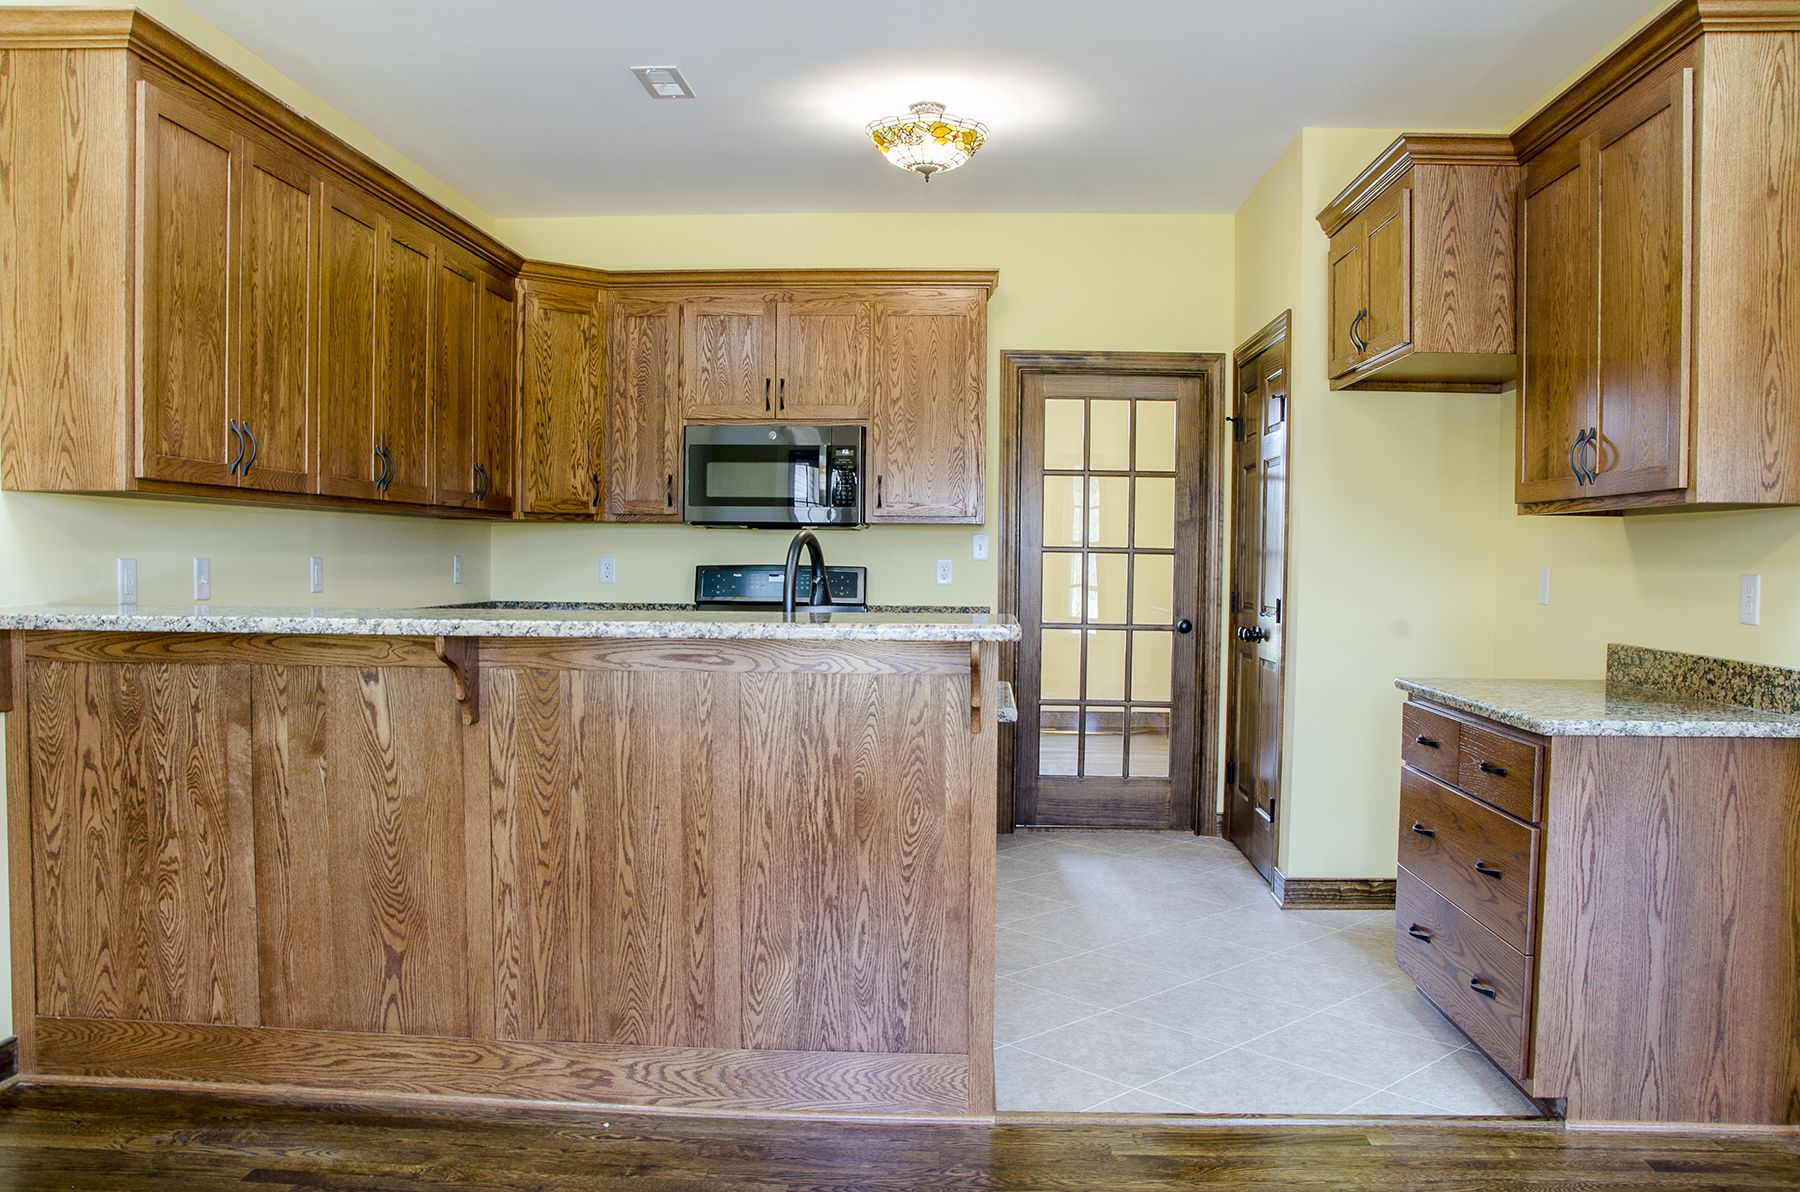 Kitchen With Woodcabinets And Lots Of Cabinets For Storage Kitchengoals Kitchen Balducci Builders Inc Custom Kitchens Kitchen Wood Cabinets